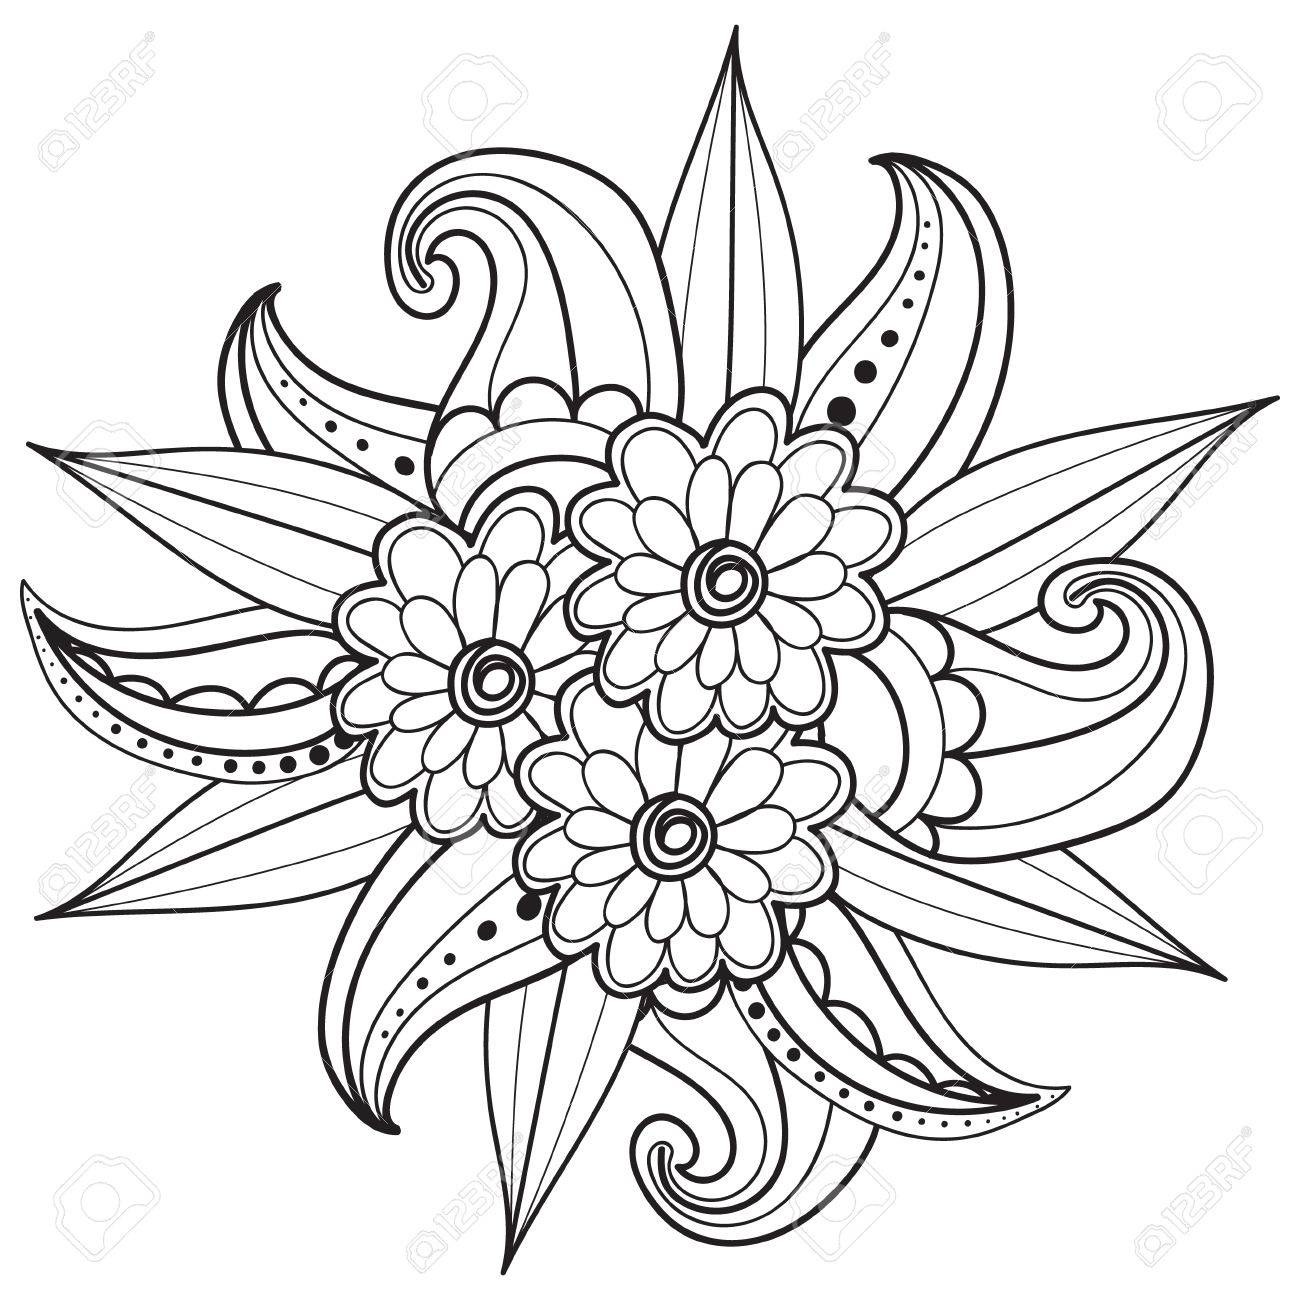 Hand Drawn Artistic Ethnic Ornamental Patterned Floral Frame